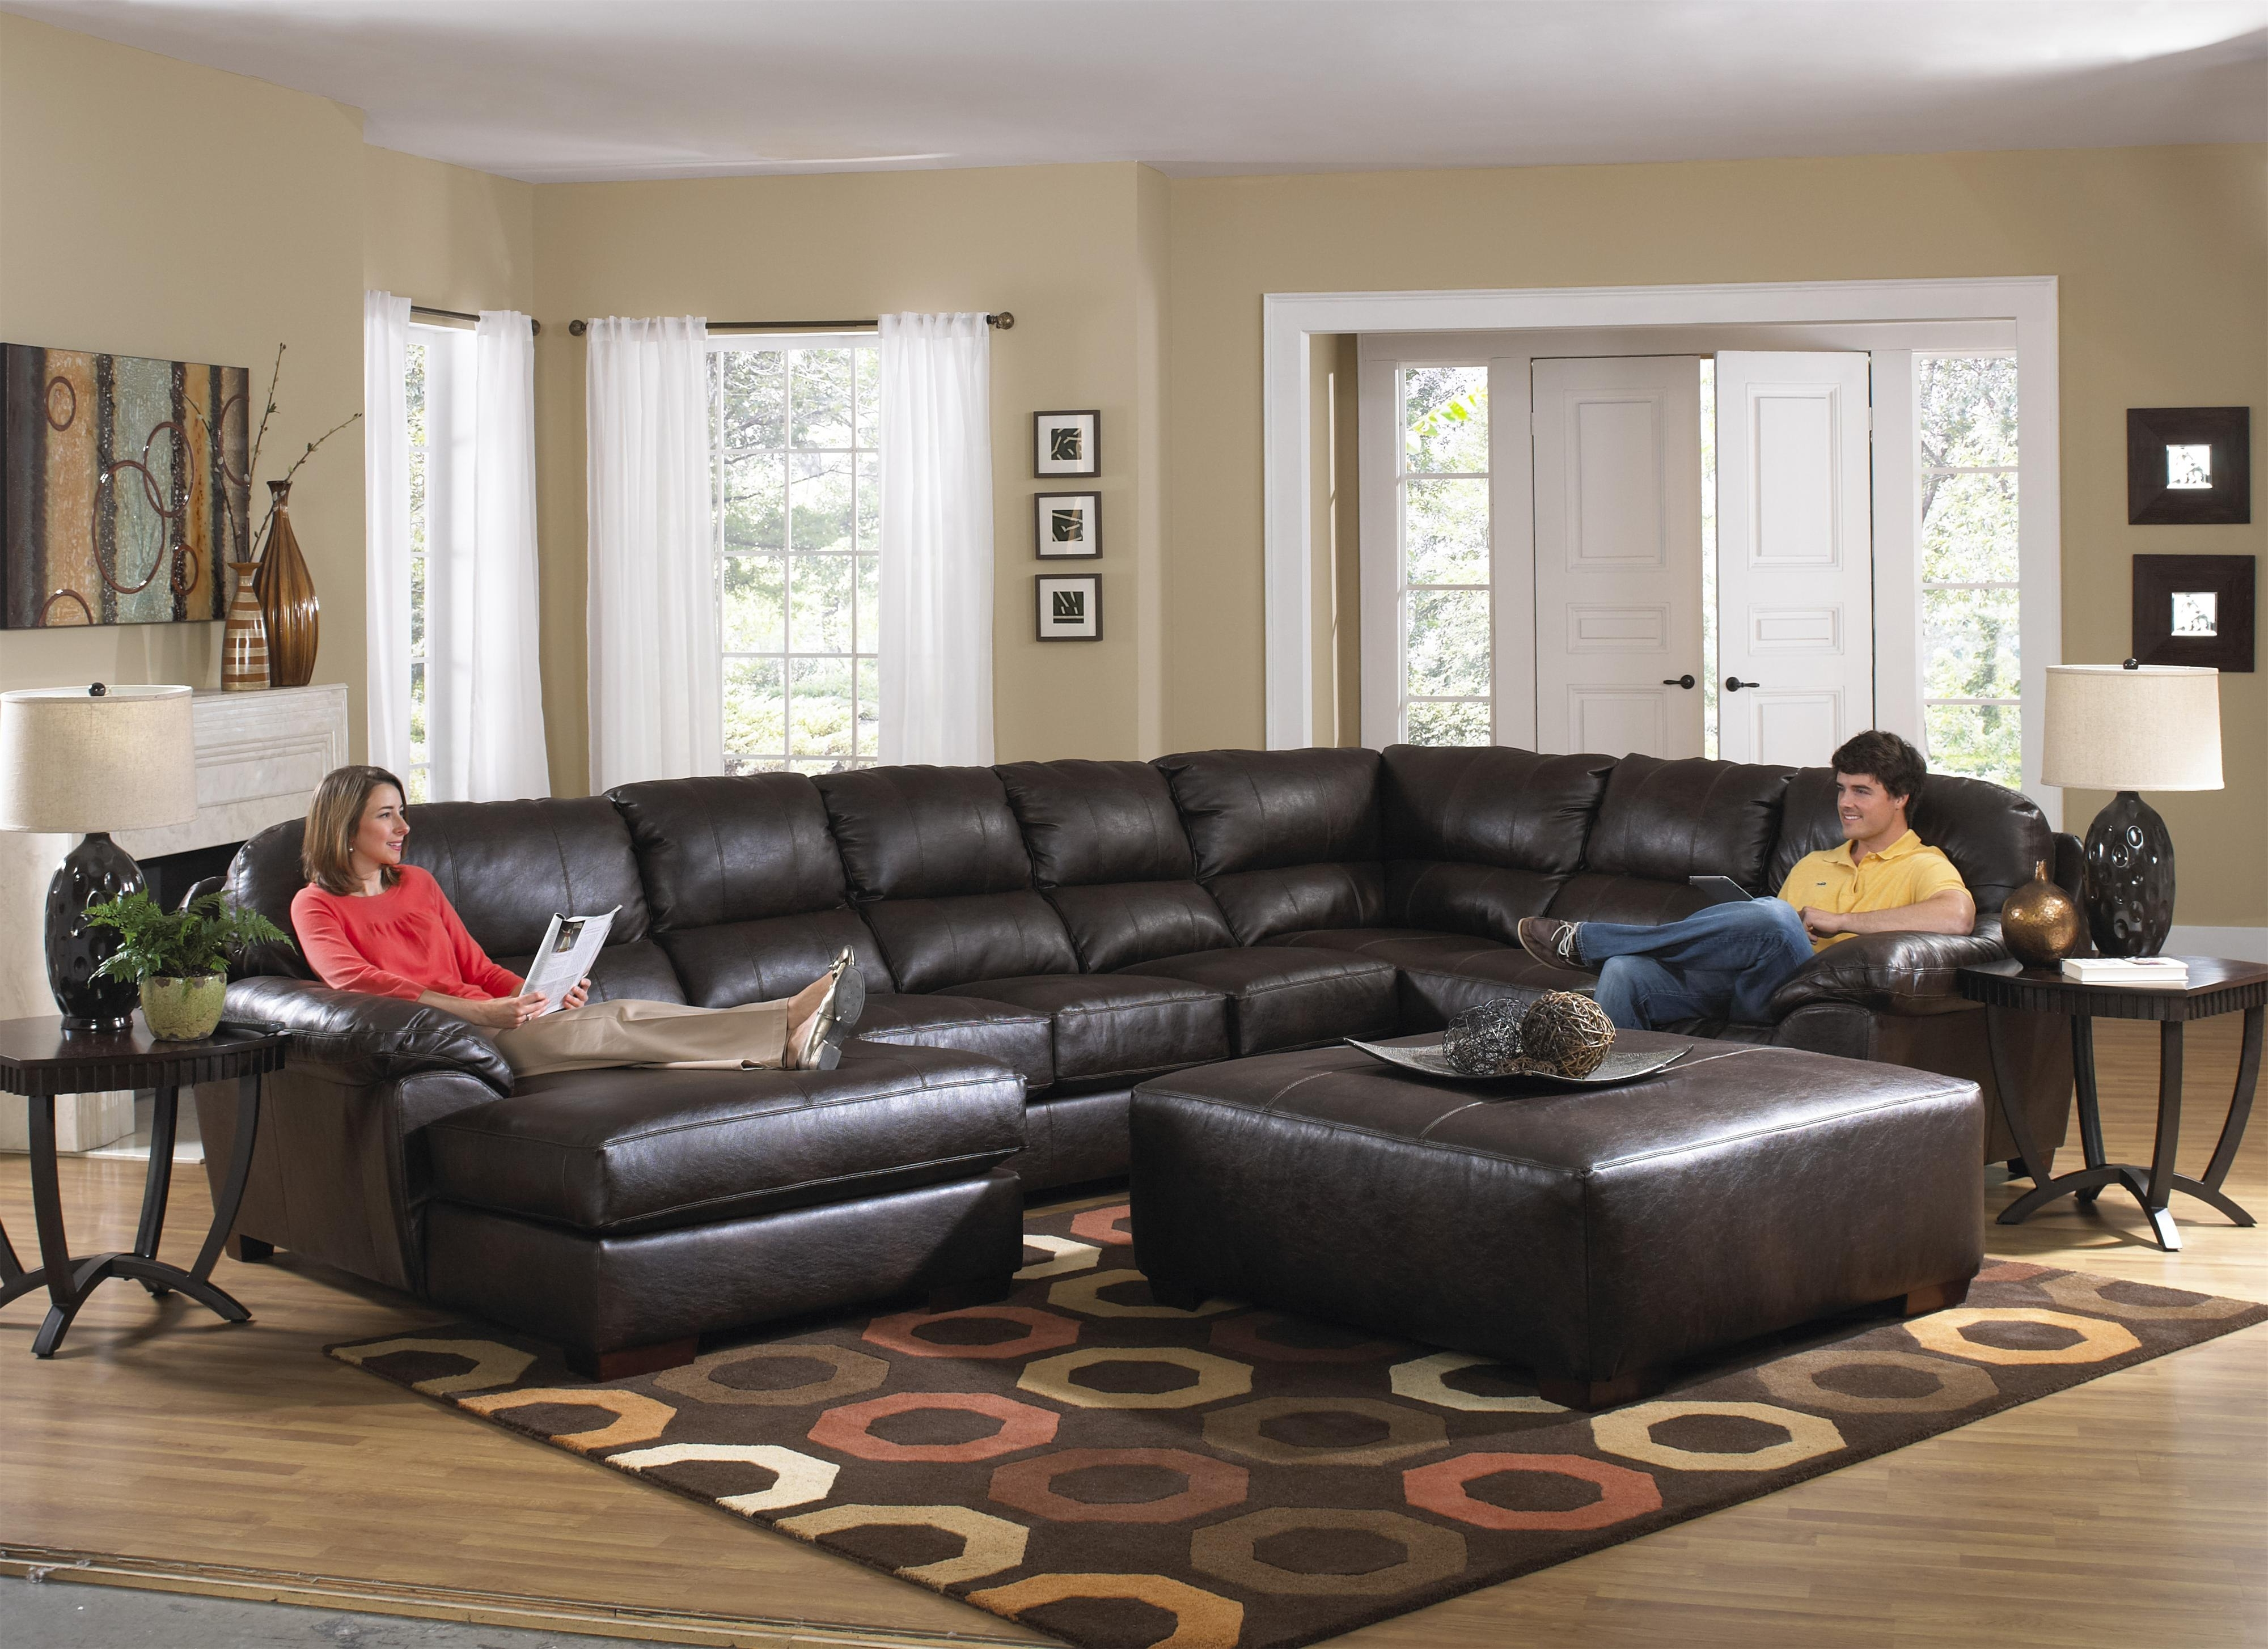 Extra Large Sectional Sofas Regarding Well Known Oversized Couches Ashley Furniture Extra Deep Couch Oversized (View 4 of 20)